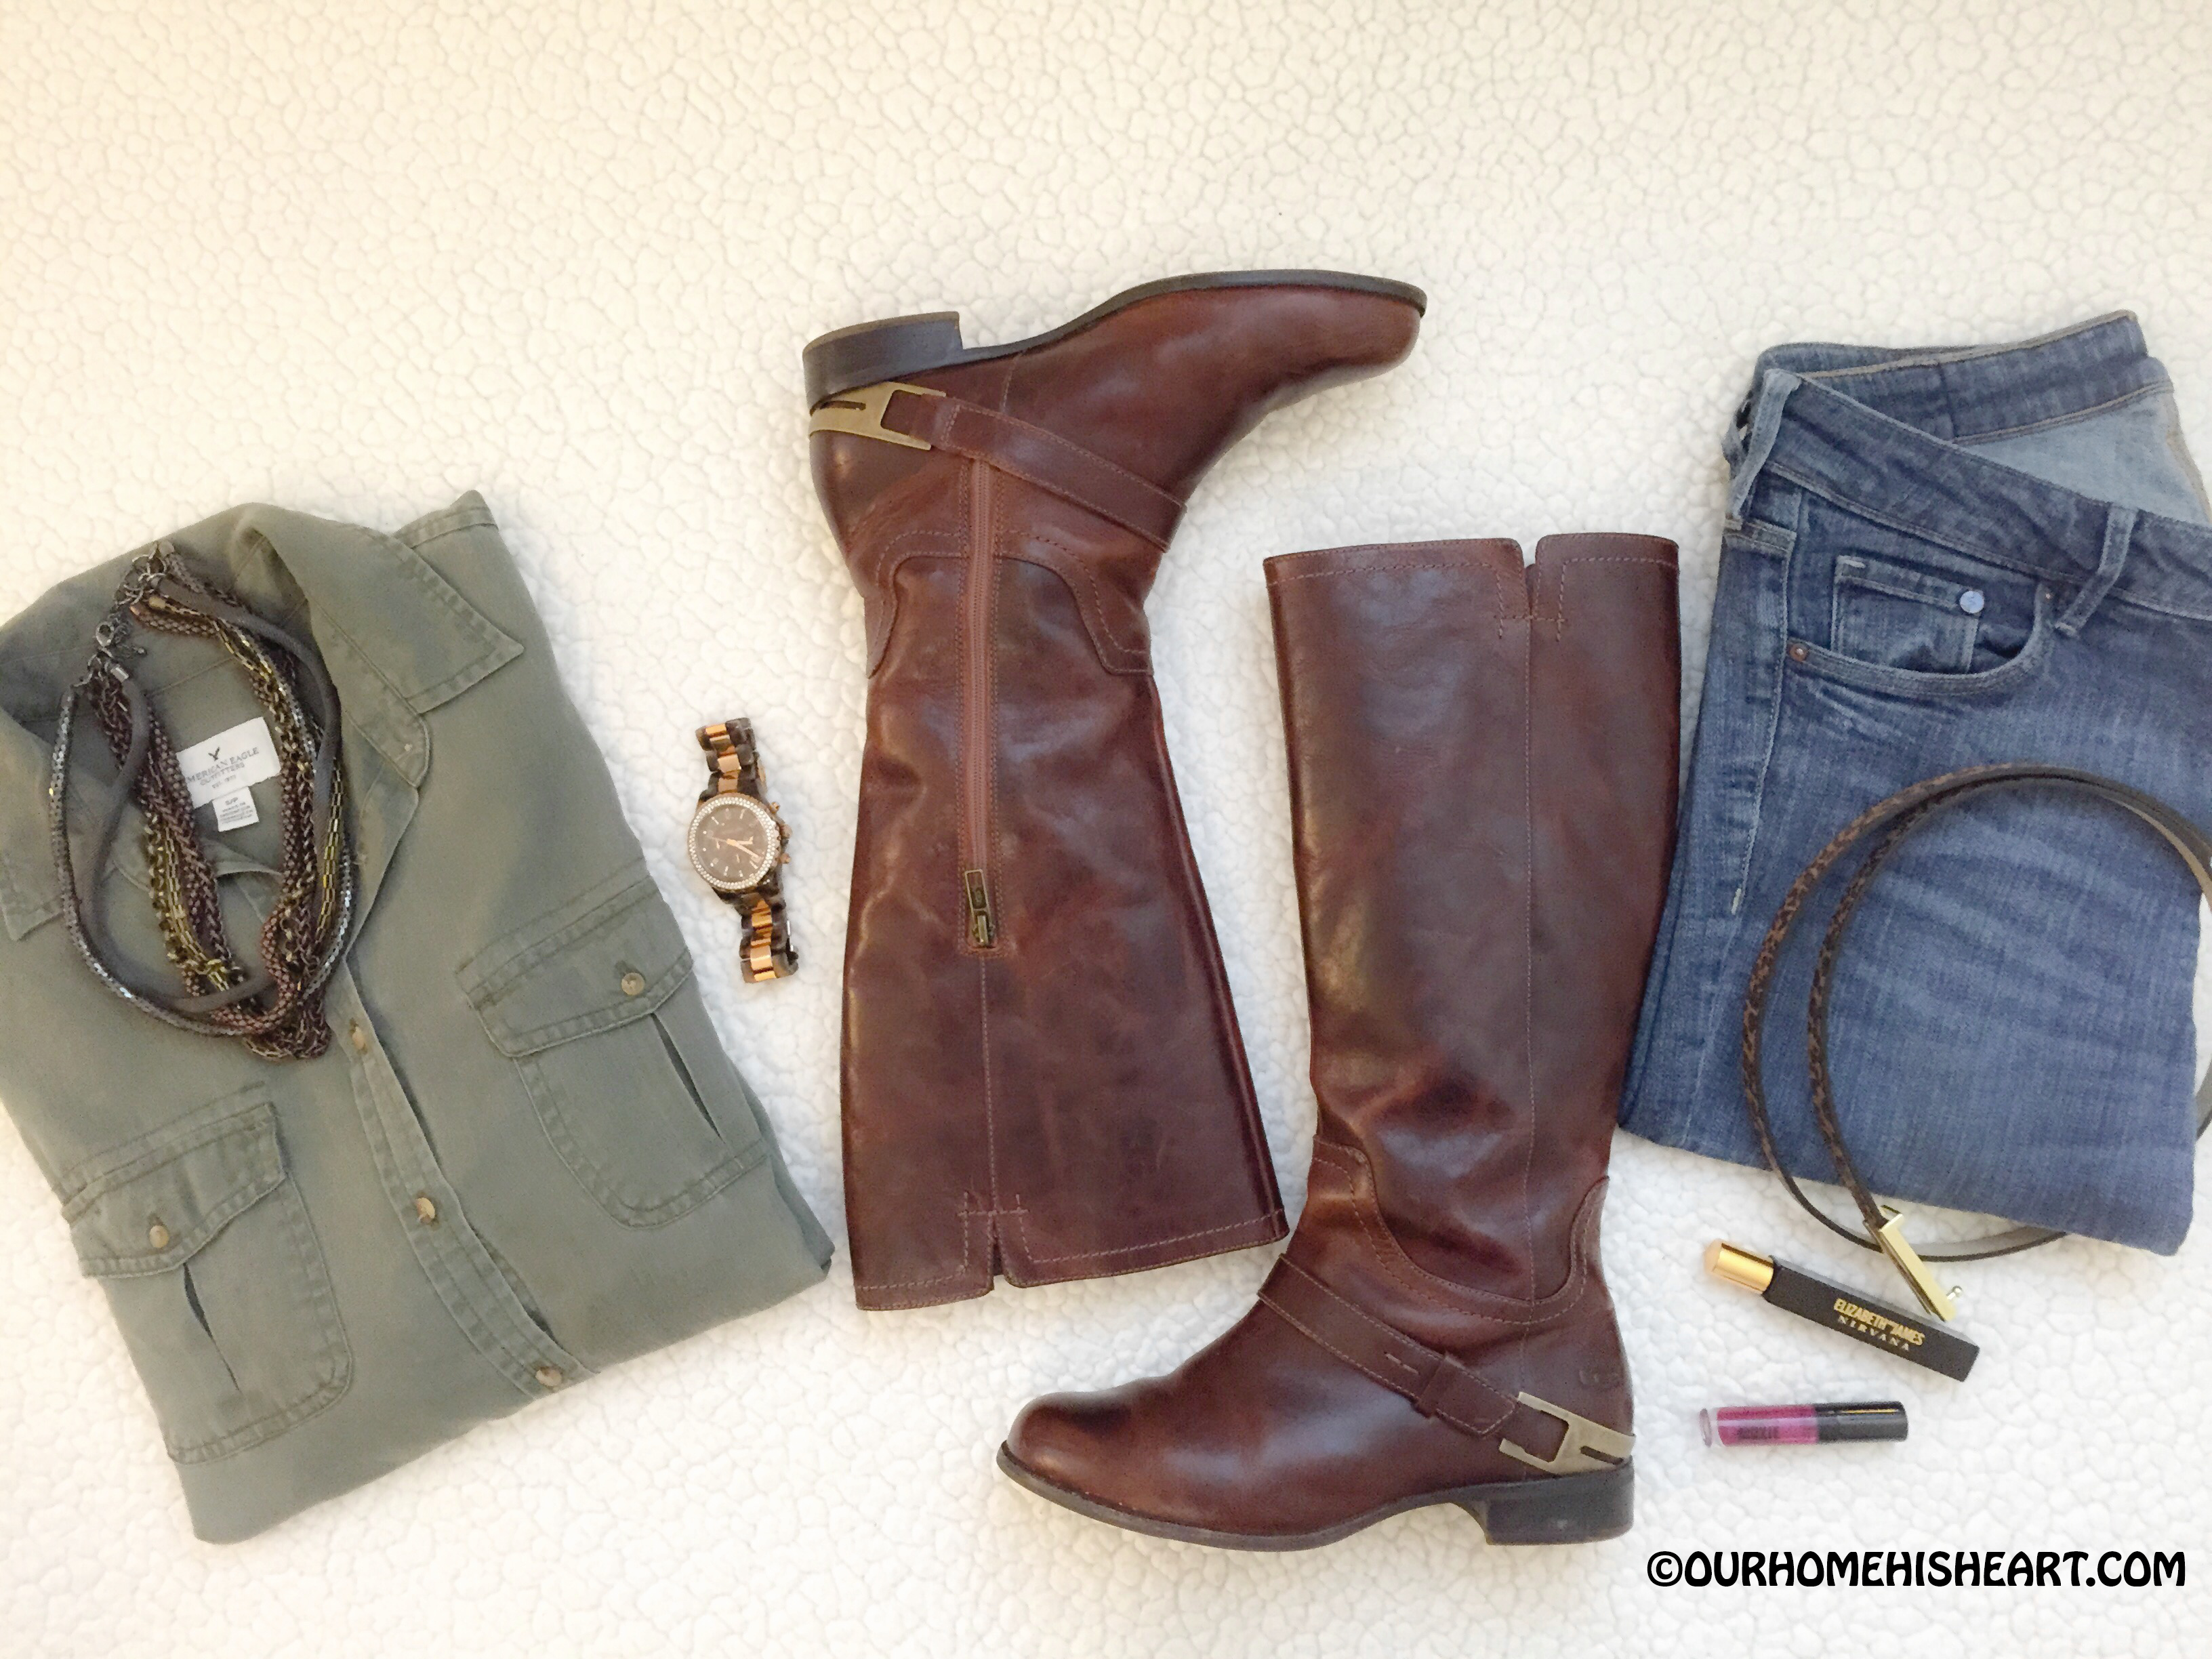 Outfit_of_the_day_Ugg_Riding_Boots_H&M_Skinny_Jeans_Micheal_Kors_Rosegold_Watch_AEO_Boyfriend_Shirt_Nirvana_Rollerball_Cheetah_Belt_MultiChain_Necklace